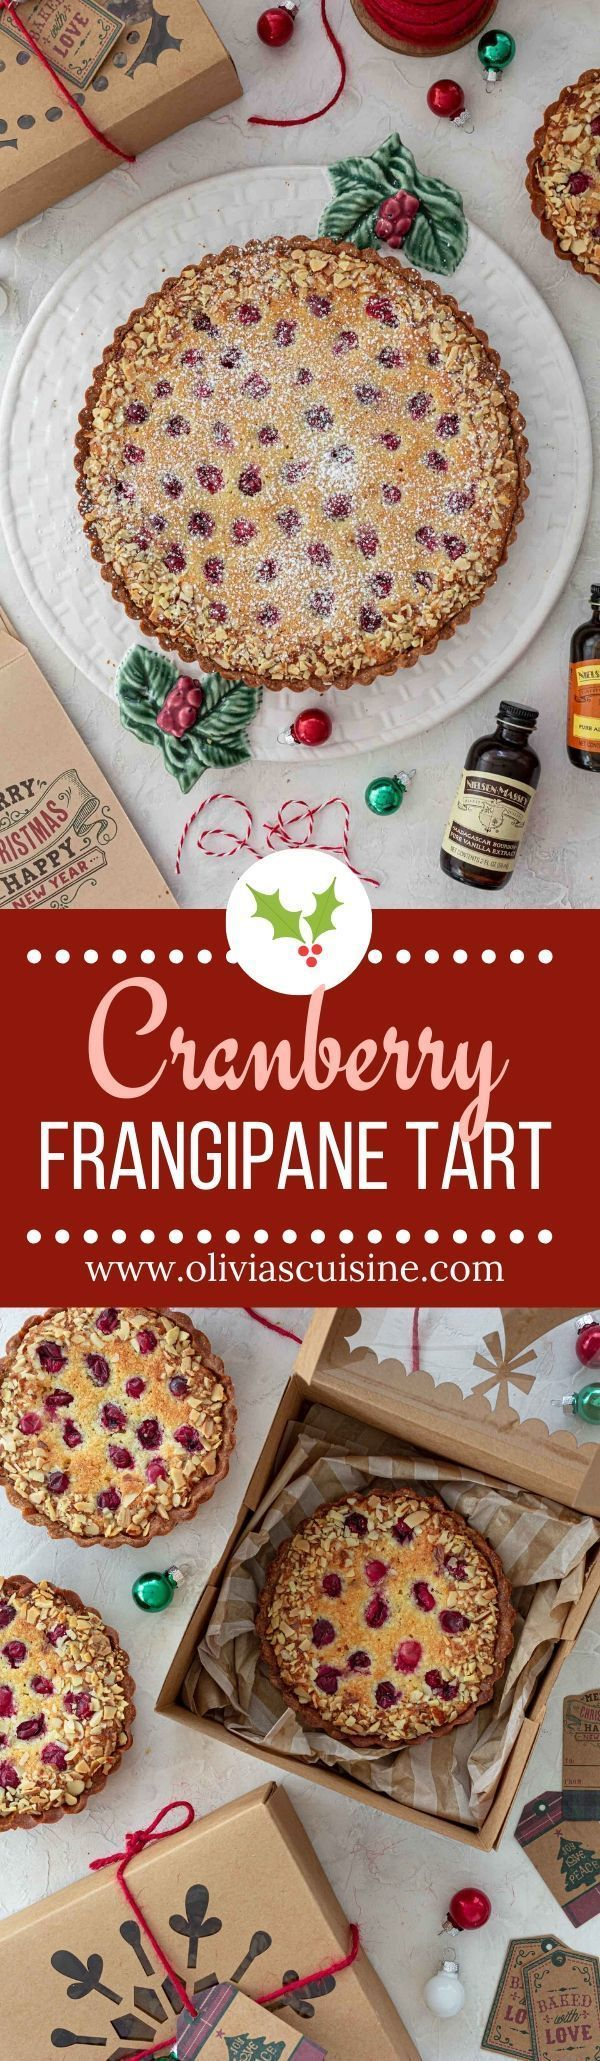 Cranberry Frangipane Tart | www.oliviascuisine.com | This beautiful and festive Cranberry Frangipane Tart will bring holiday joy to your celebrations! Sweet, tangy and absolutely irresistible. Bake an extra batch to gift to your loved ones! #tart #frangipane #cranberries #cranberrysauce #desserts #frenchdesserts